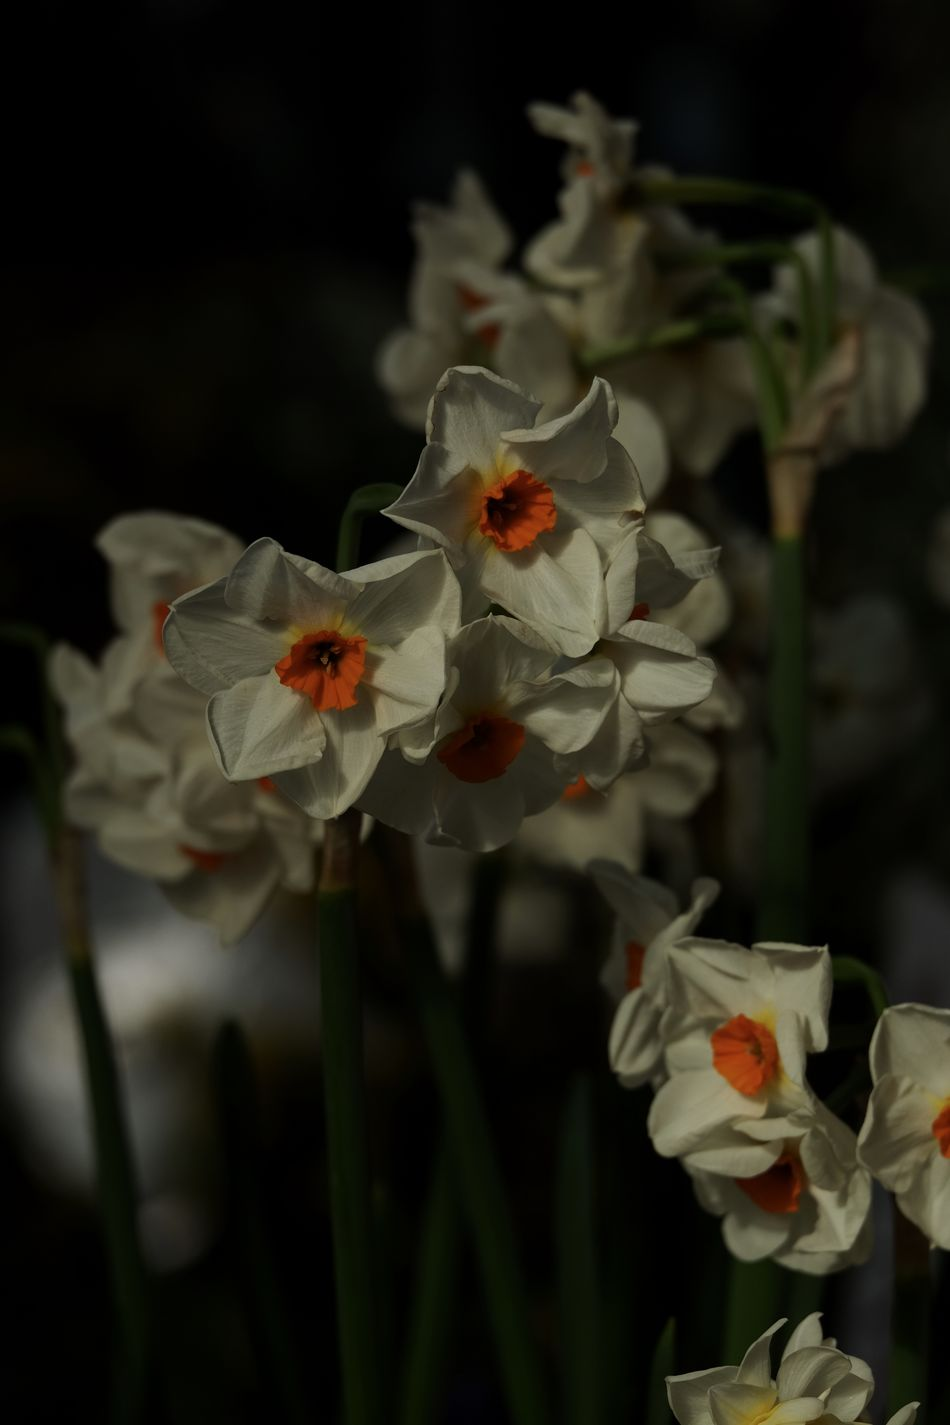 Beauty In Nature Blooming Close-up Daffodils Day Flower Flower Head Fragility Freshness Fujifilm_xseries Growth Myfujifilm Nature No People Outdoors Petal Plant